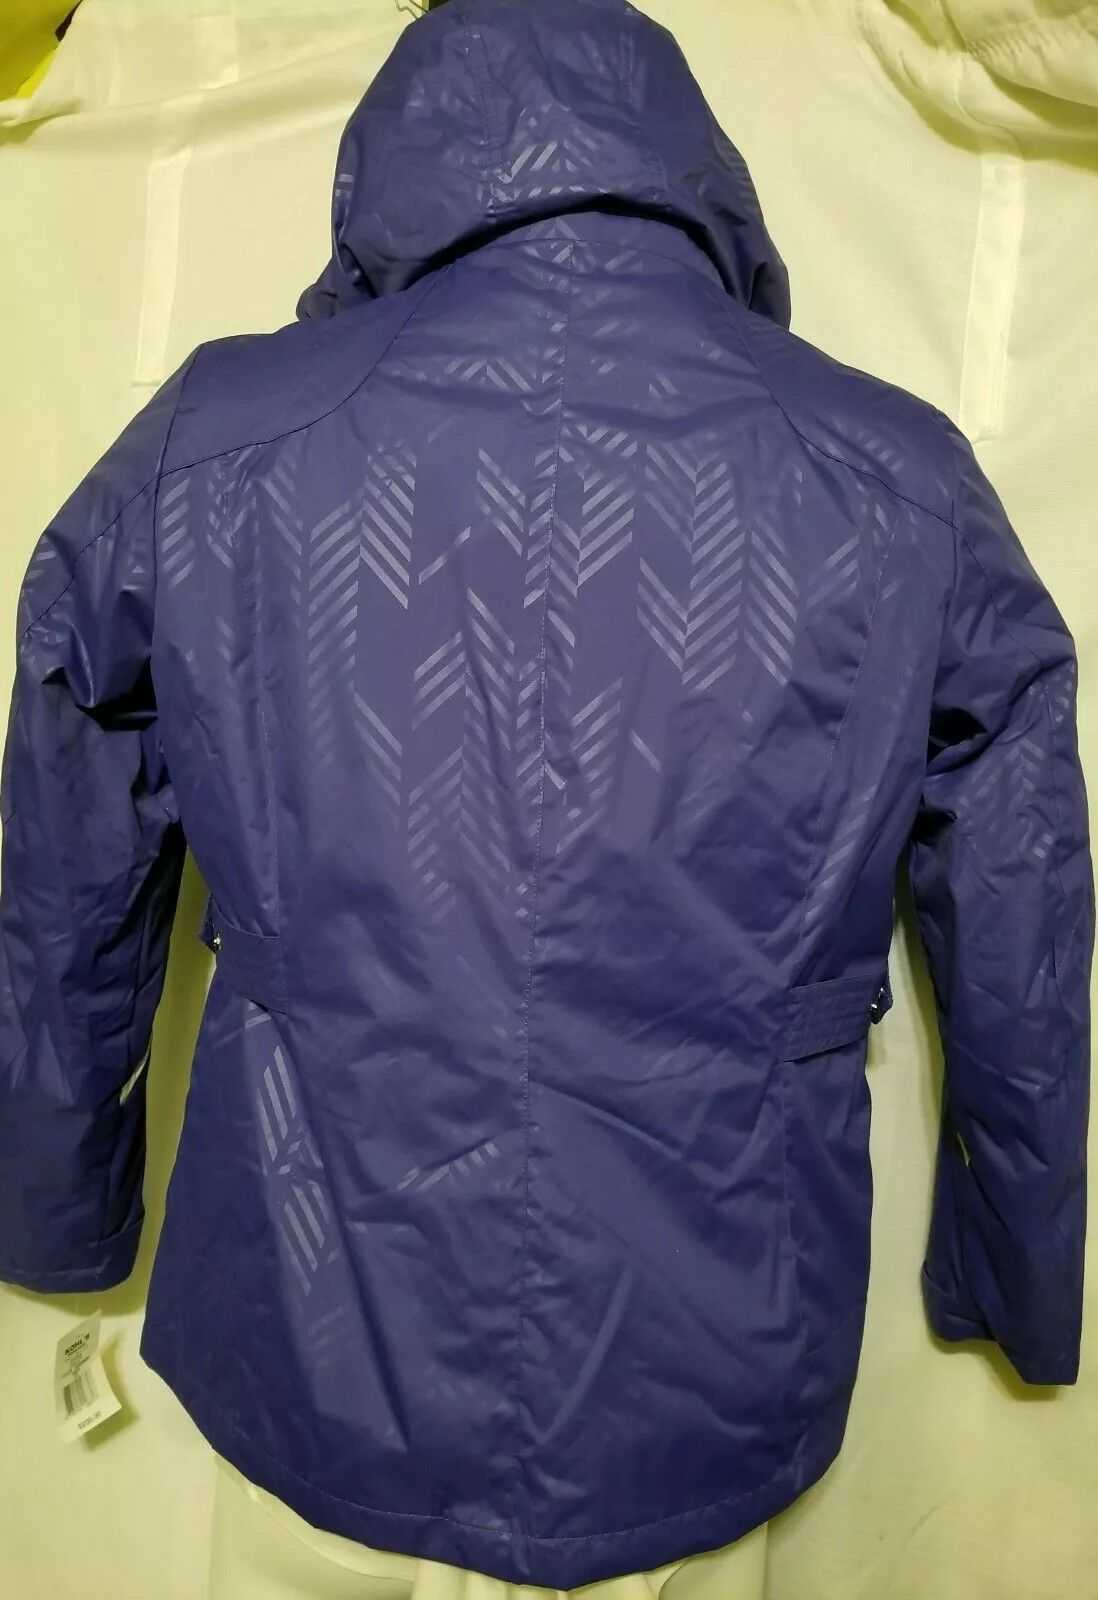 ZeroXposur NEW 3 in 1 Coat XL Ultra Light Light Light ThermoCloud Water Wind Resistant bluee acaf19